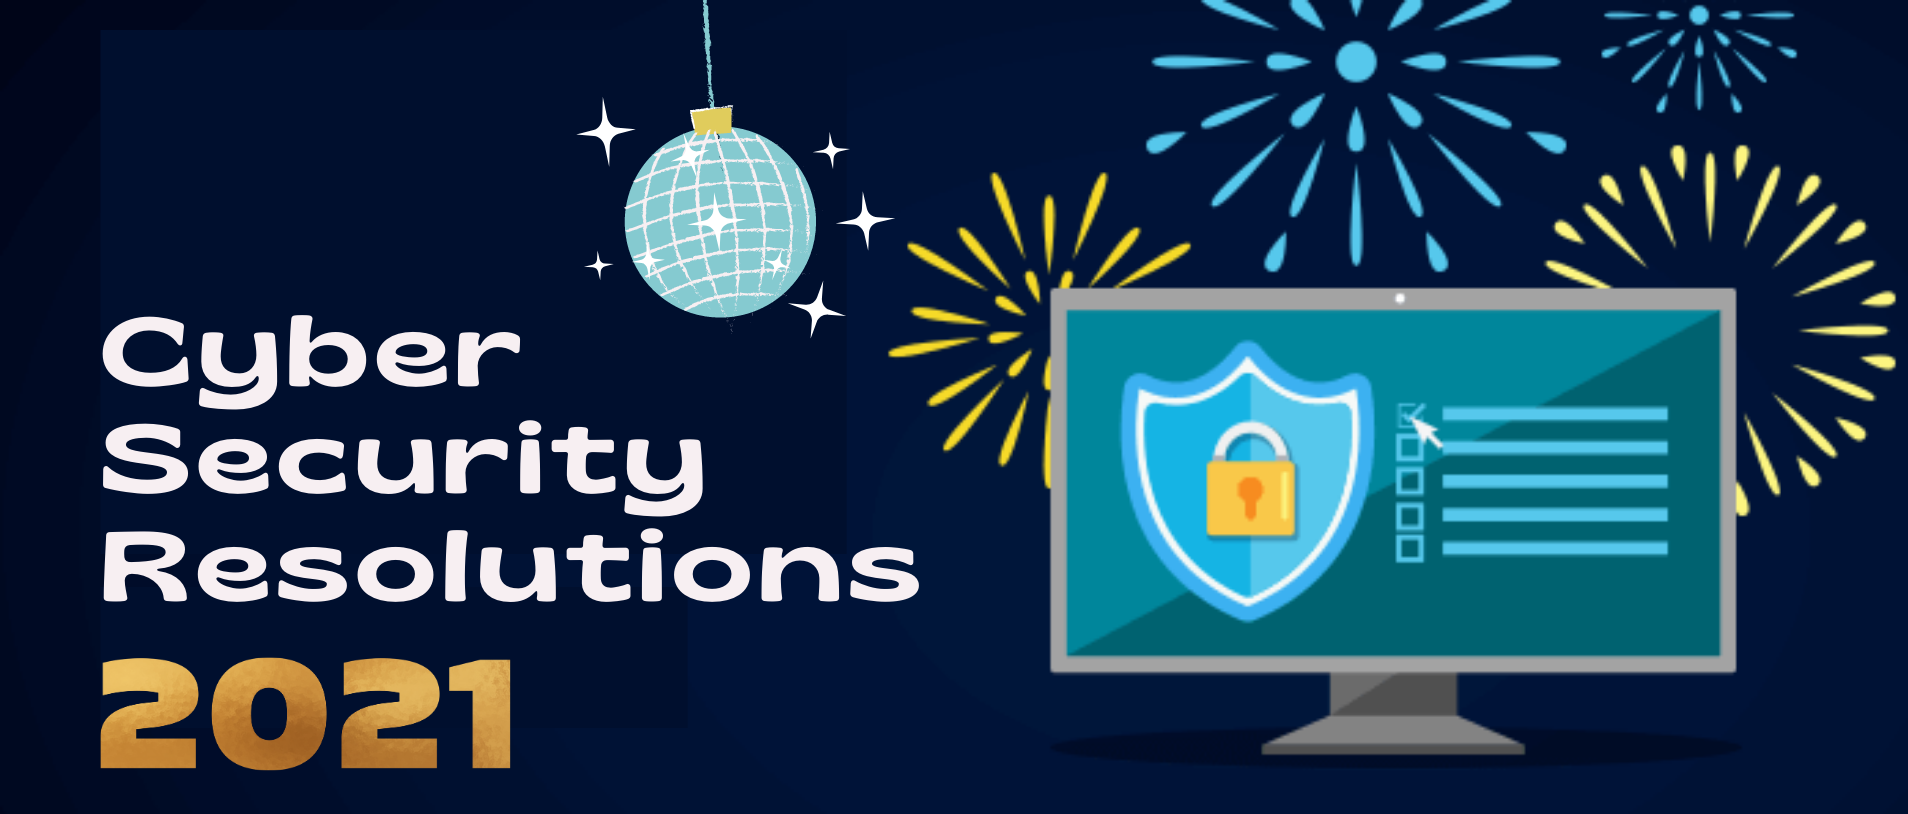 Cyber Security's Resolutions heading our way in 2021